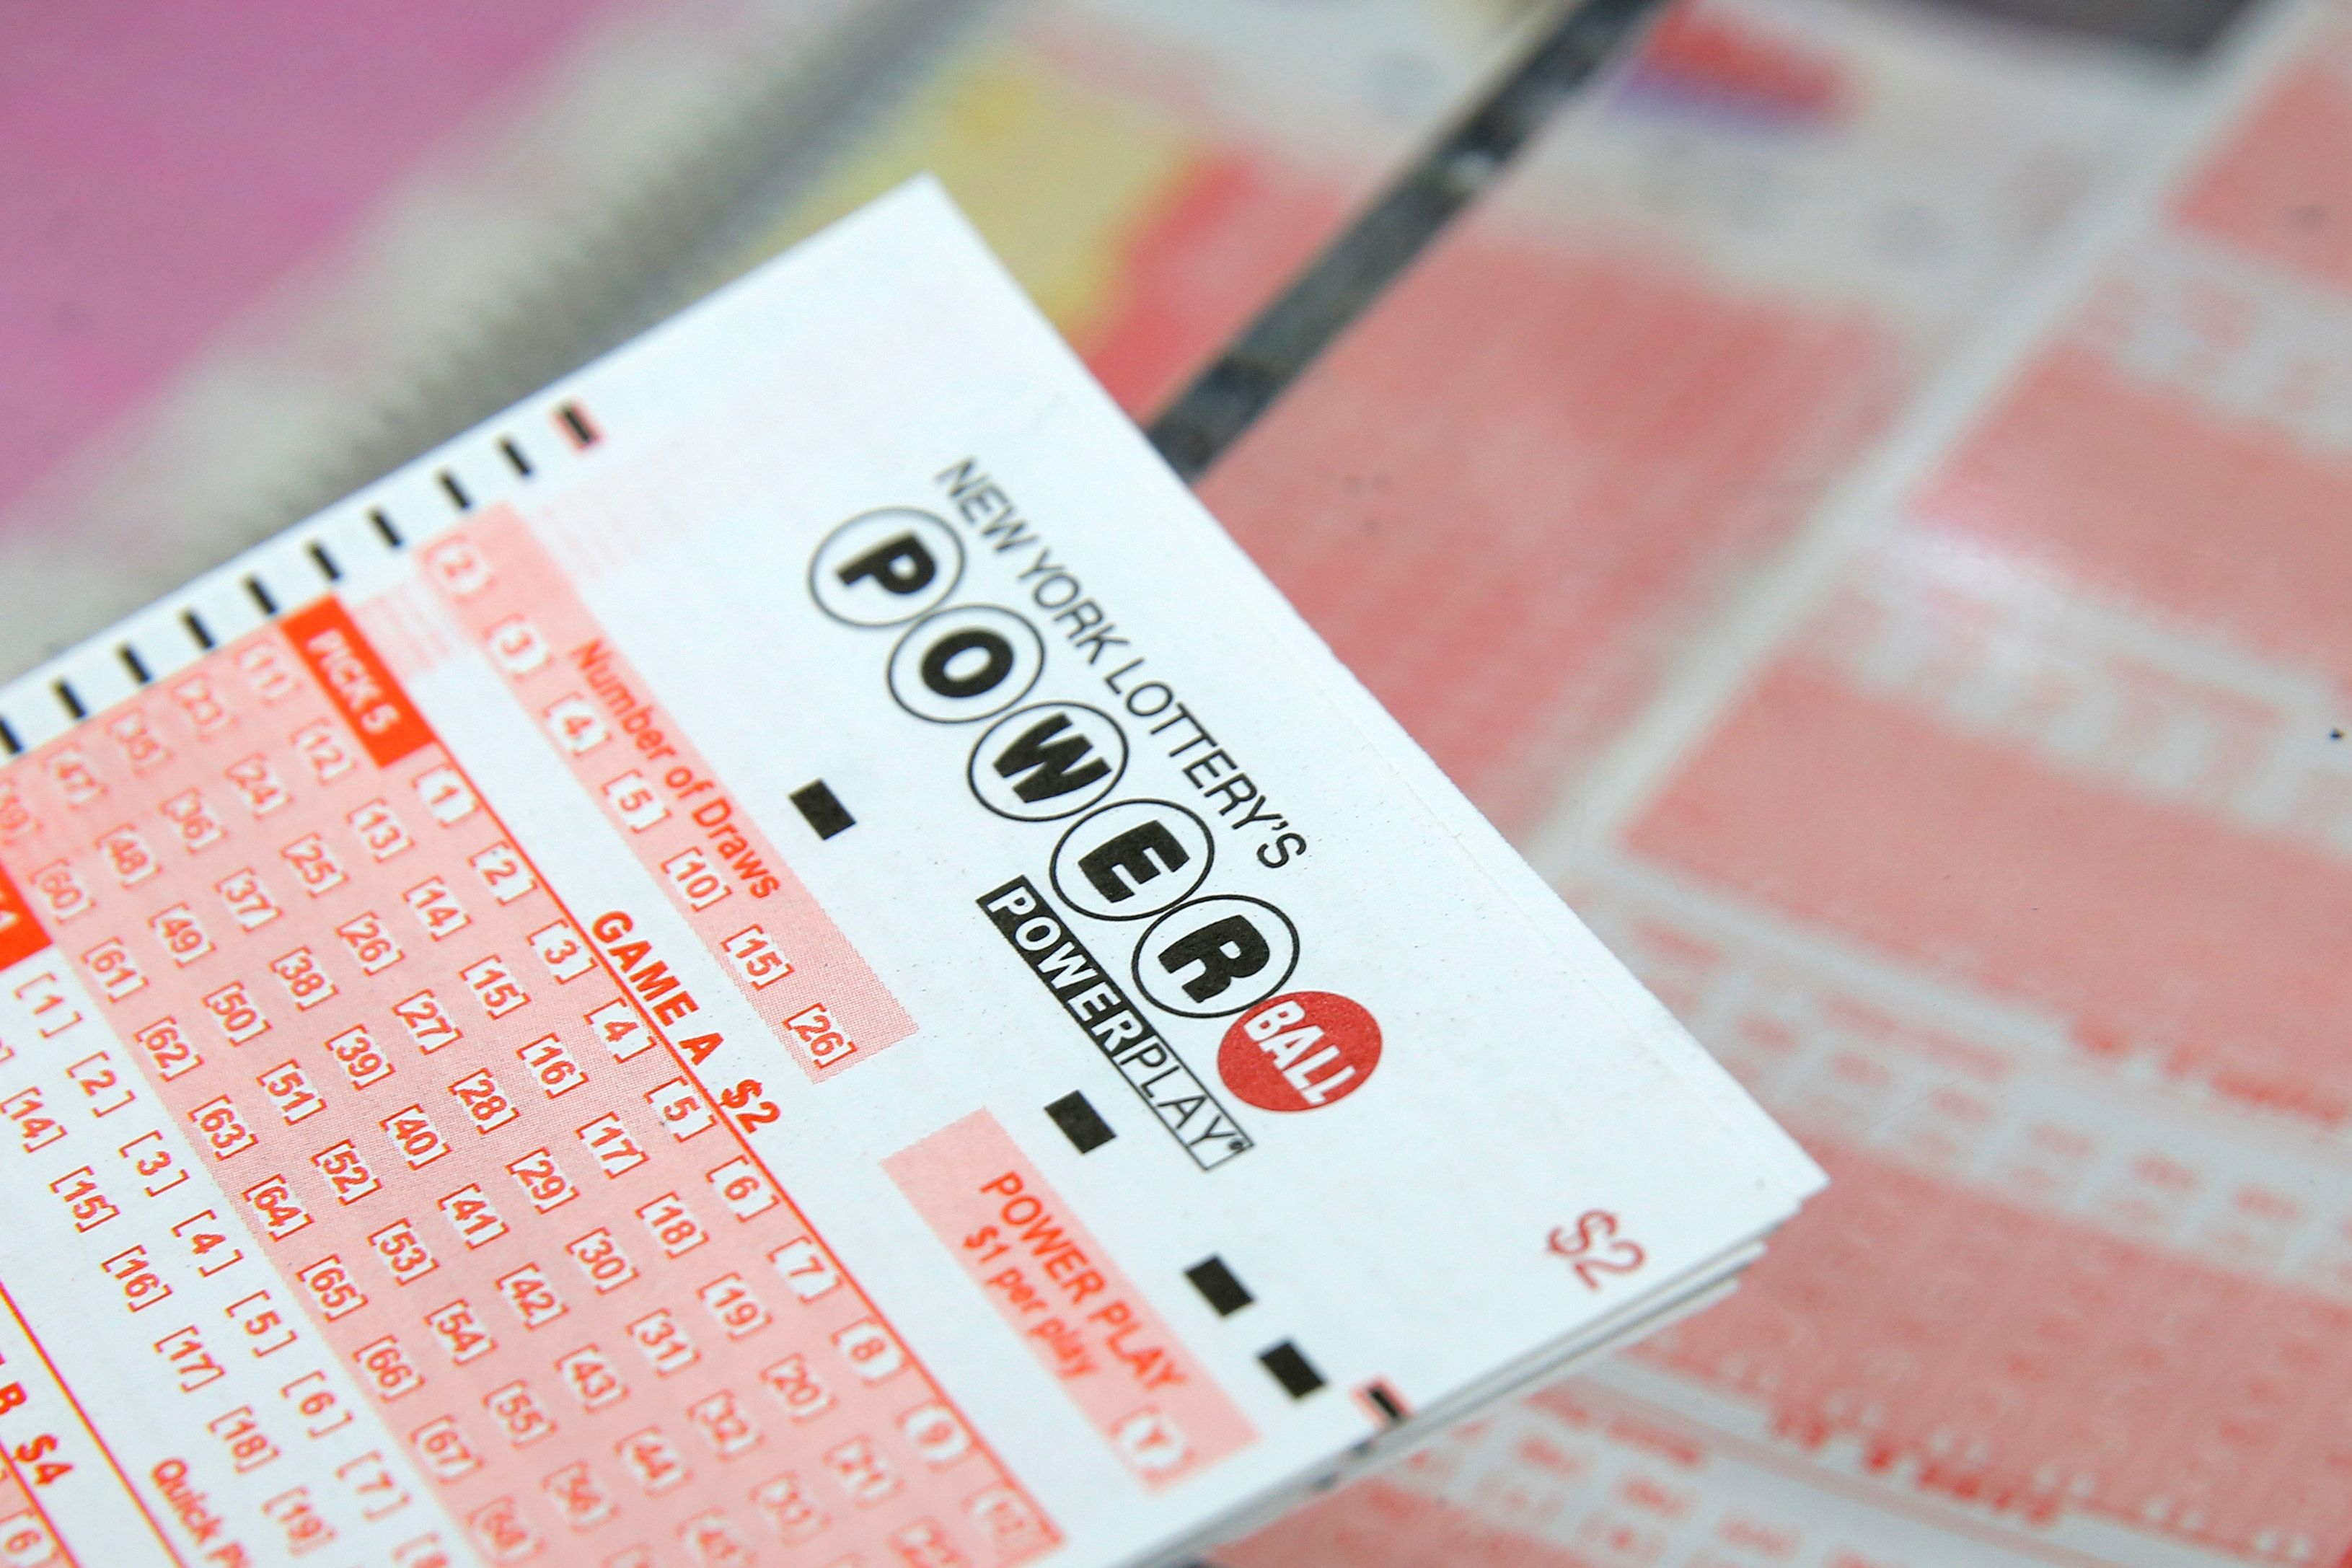 Powerball's next drawing will be on Wednesday.